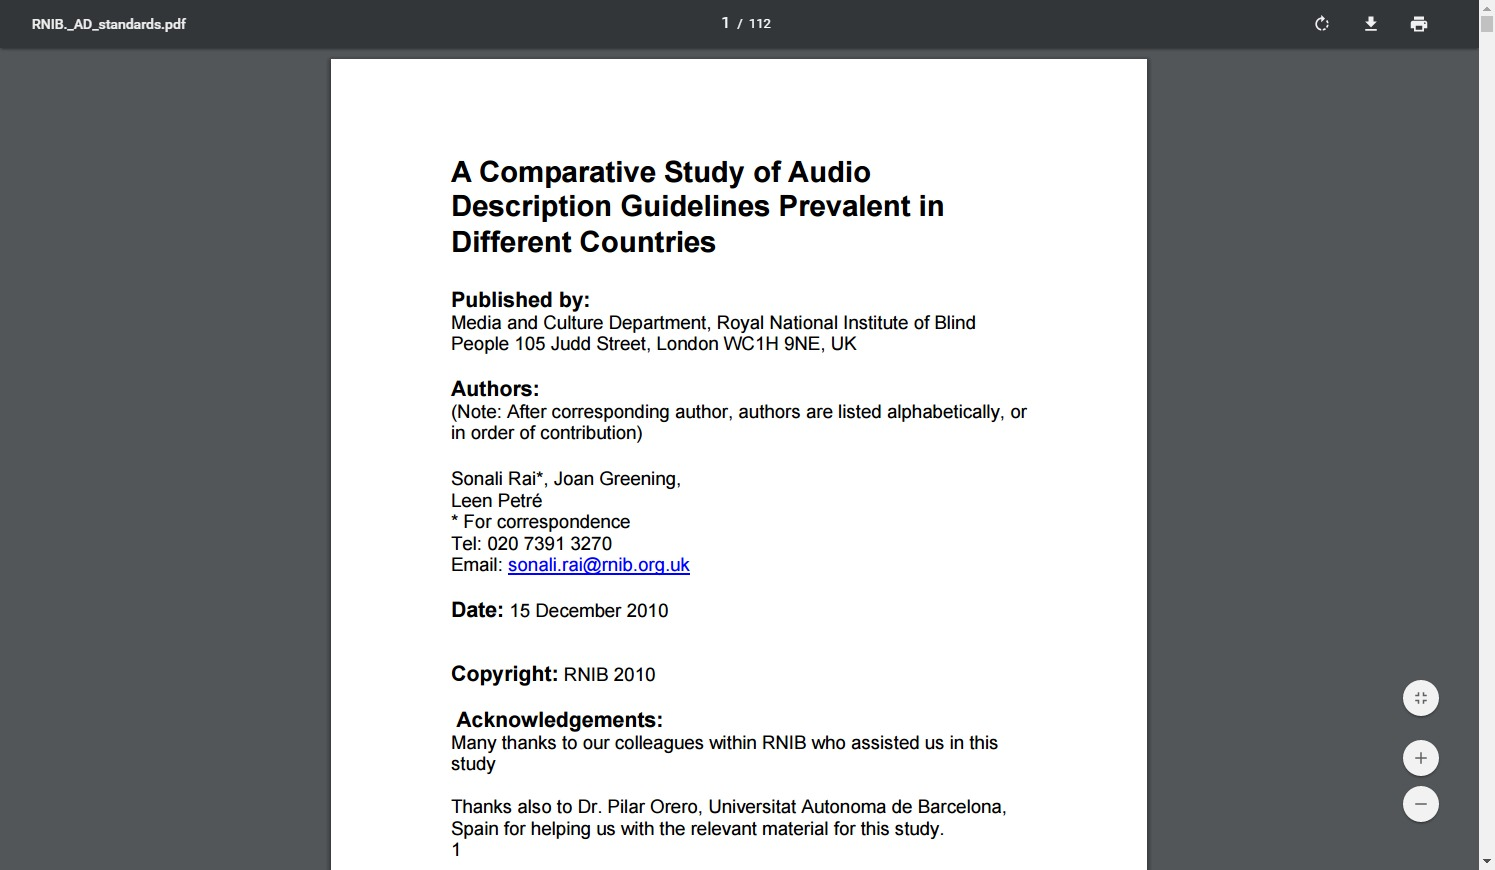 A Comparative Study of Audio Description Guidelines Prevalent in Different Countries